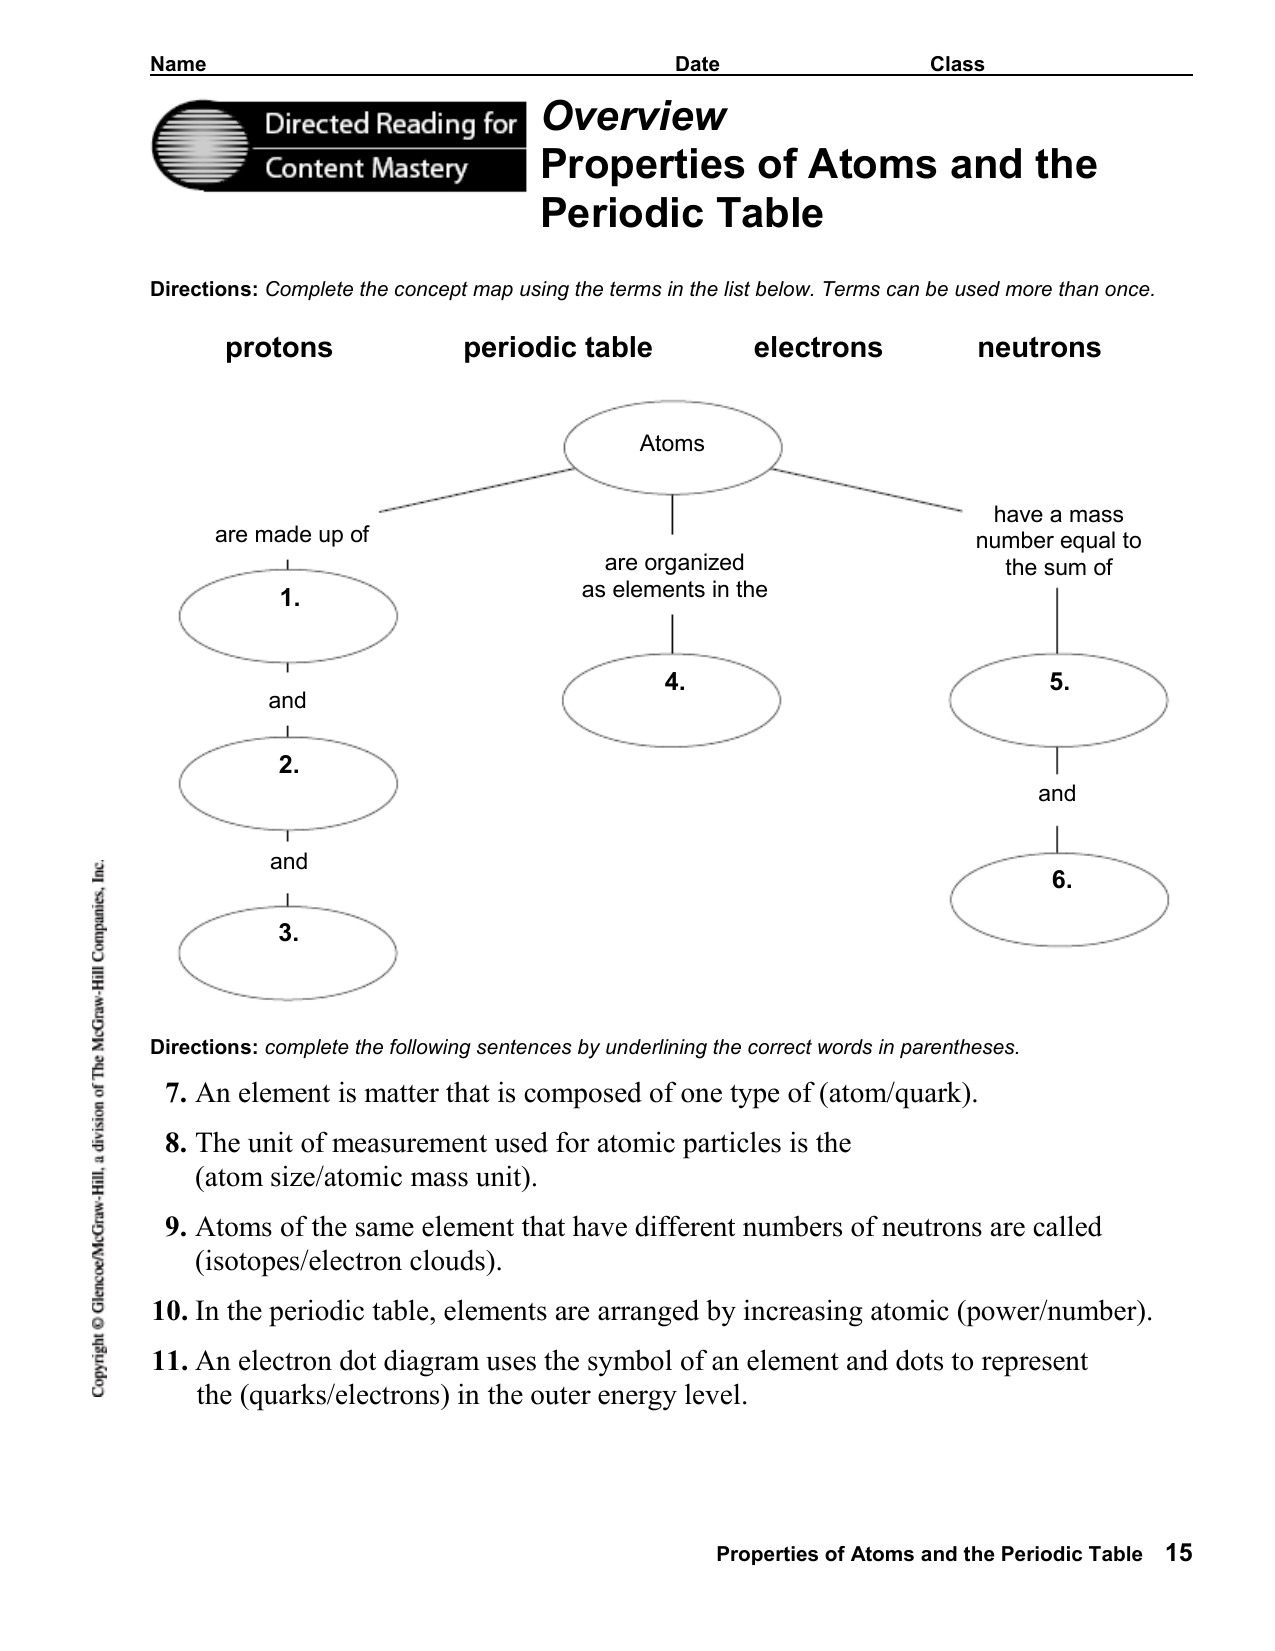 Overview Properties Of Atoms And The Periodic Table